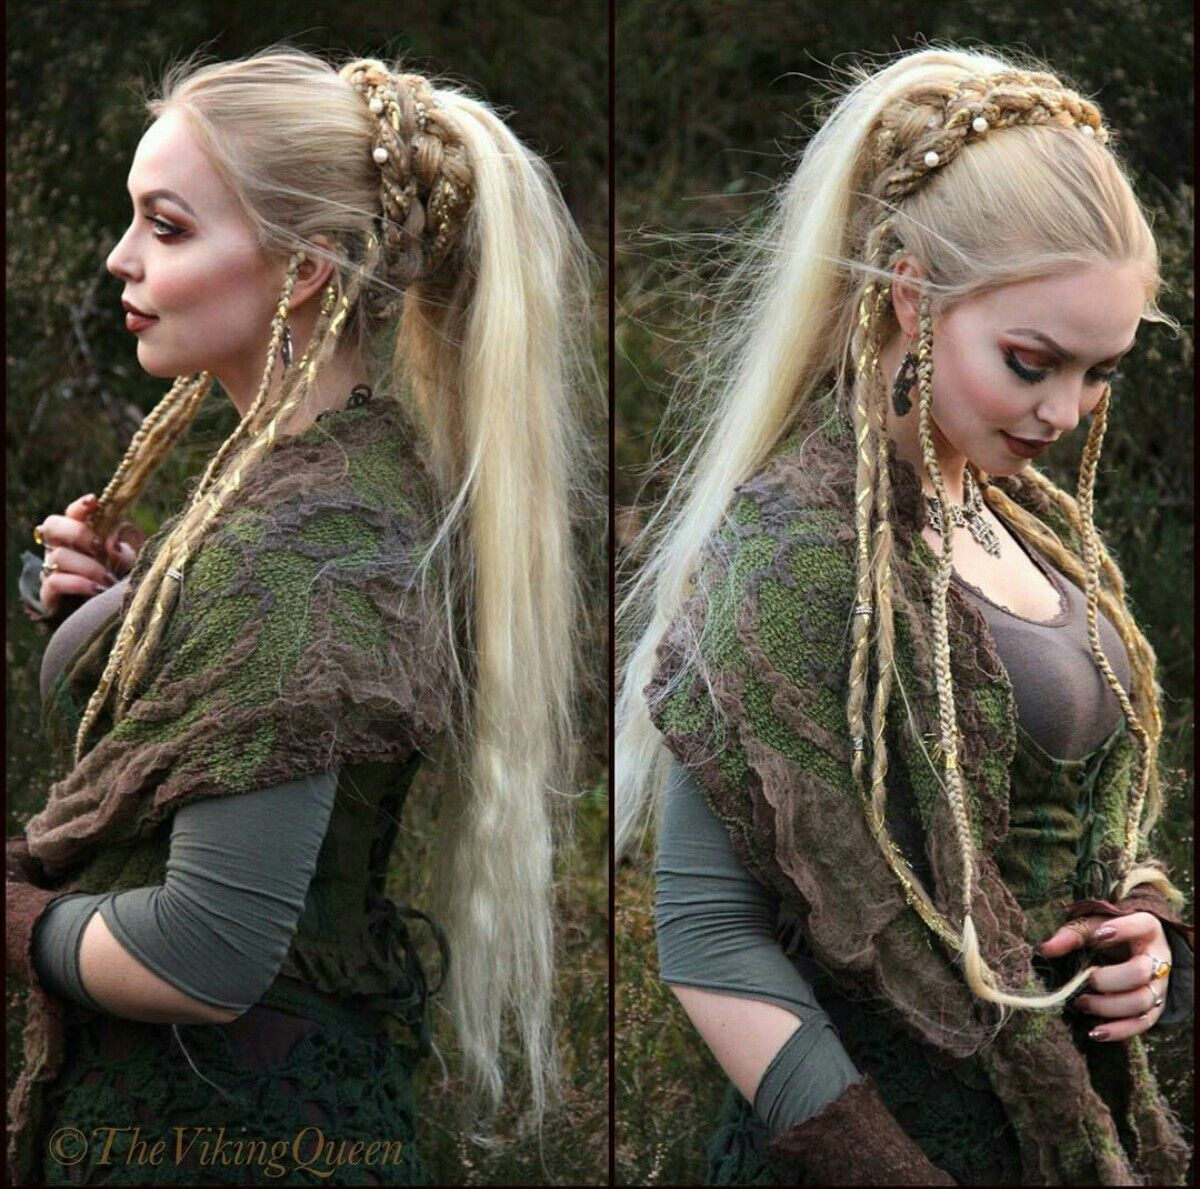 viking hairstyles This page was last edited on 24 july 2018, at 18:24 content is available under cc by-nc-sa 30 unless otherwise noted game content and materials are trademarks and copyrights of their respective publisher and its licensors.